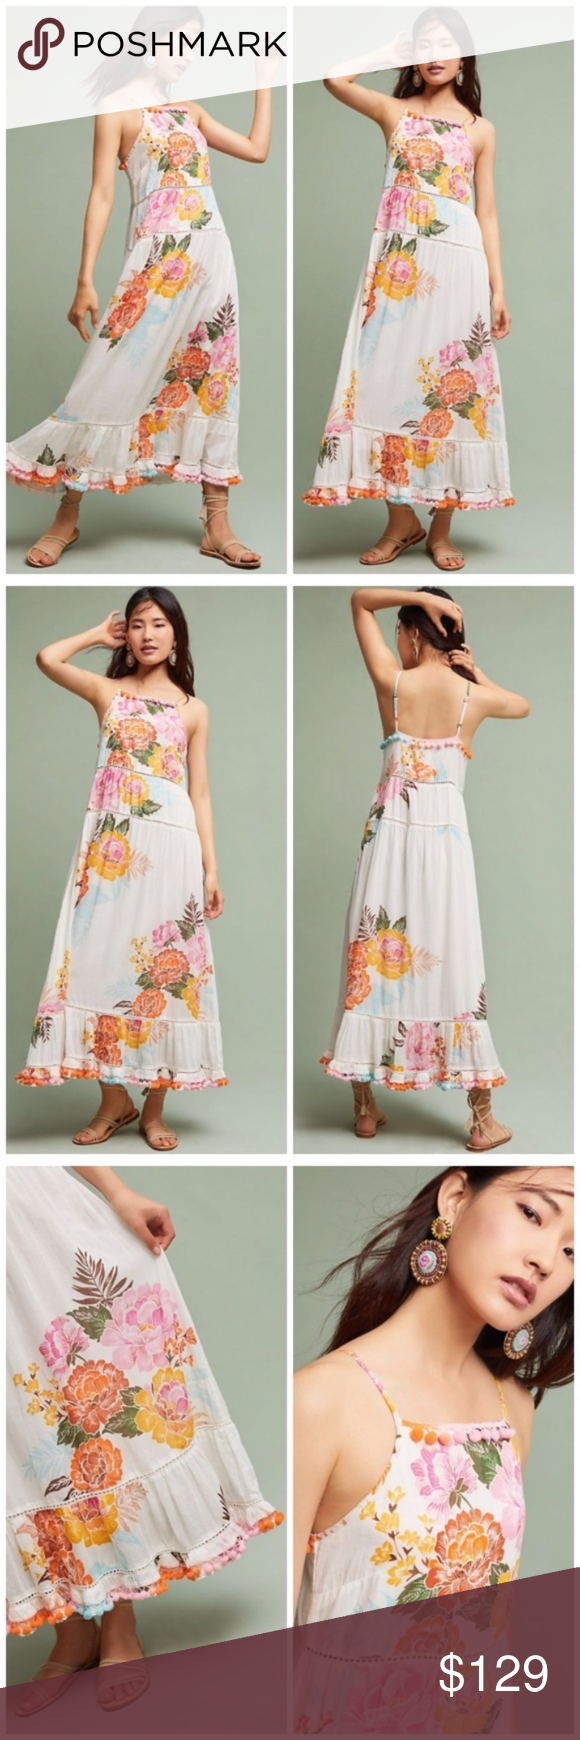 444c756aae2 Anthropologie Farm Rio Havana Floral Dress